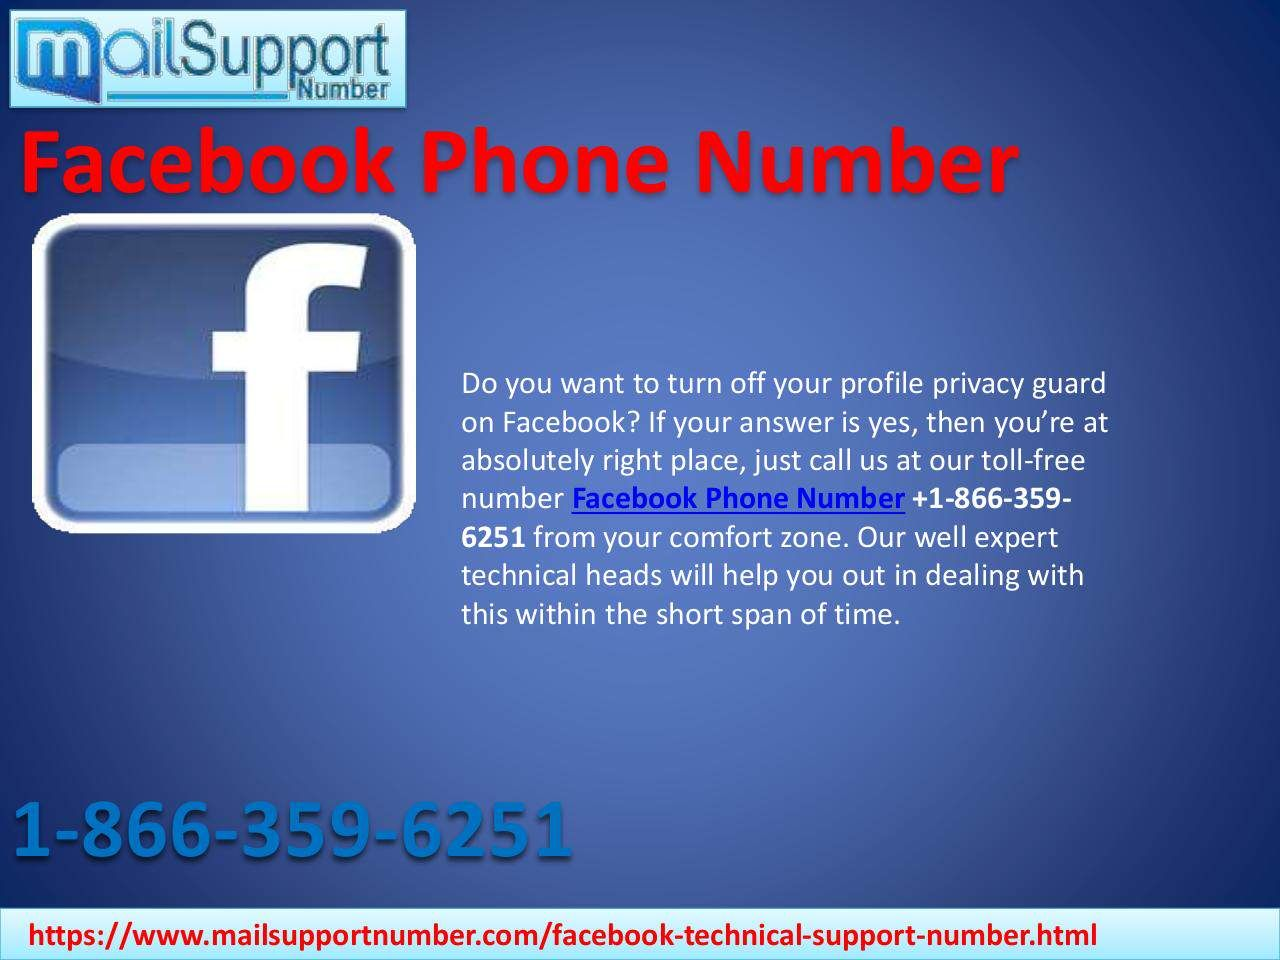 Having Account Setting Glitches? Dial Facebook Phone